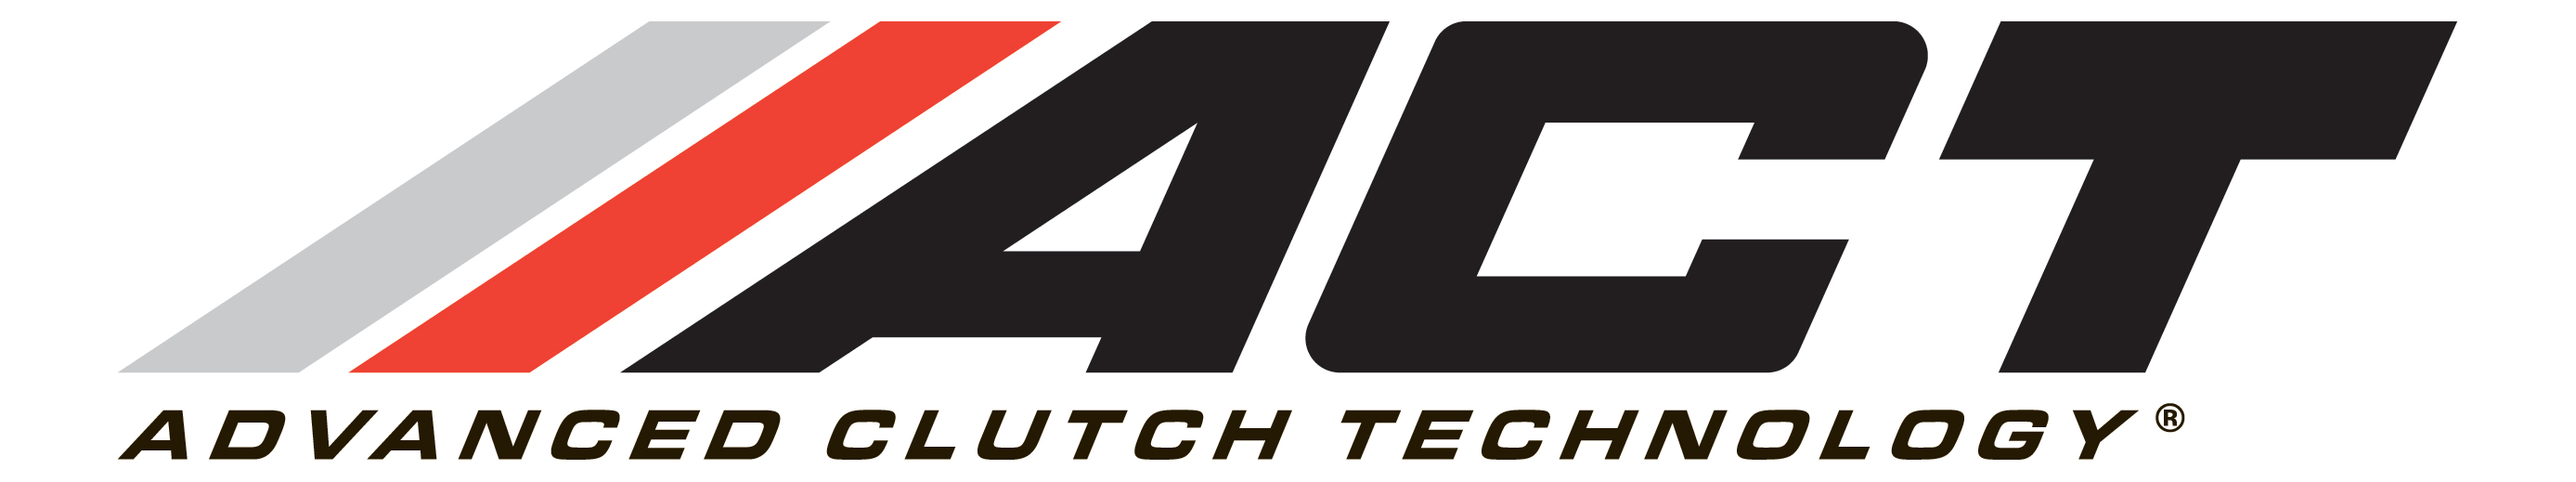 act-logo-white.jpg